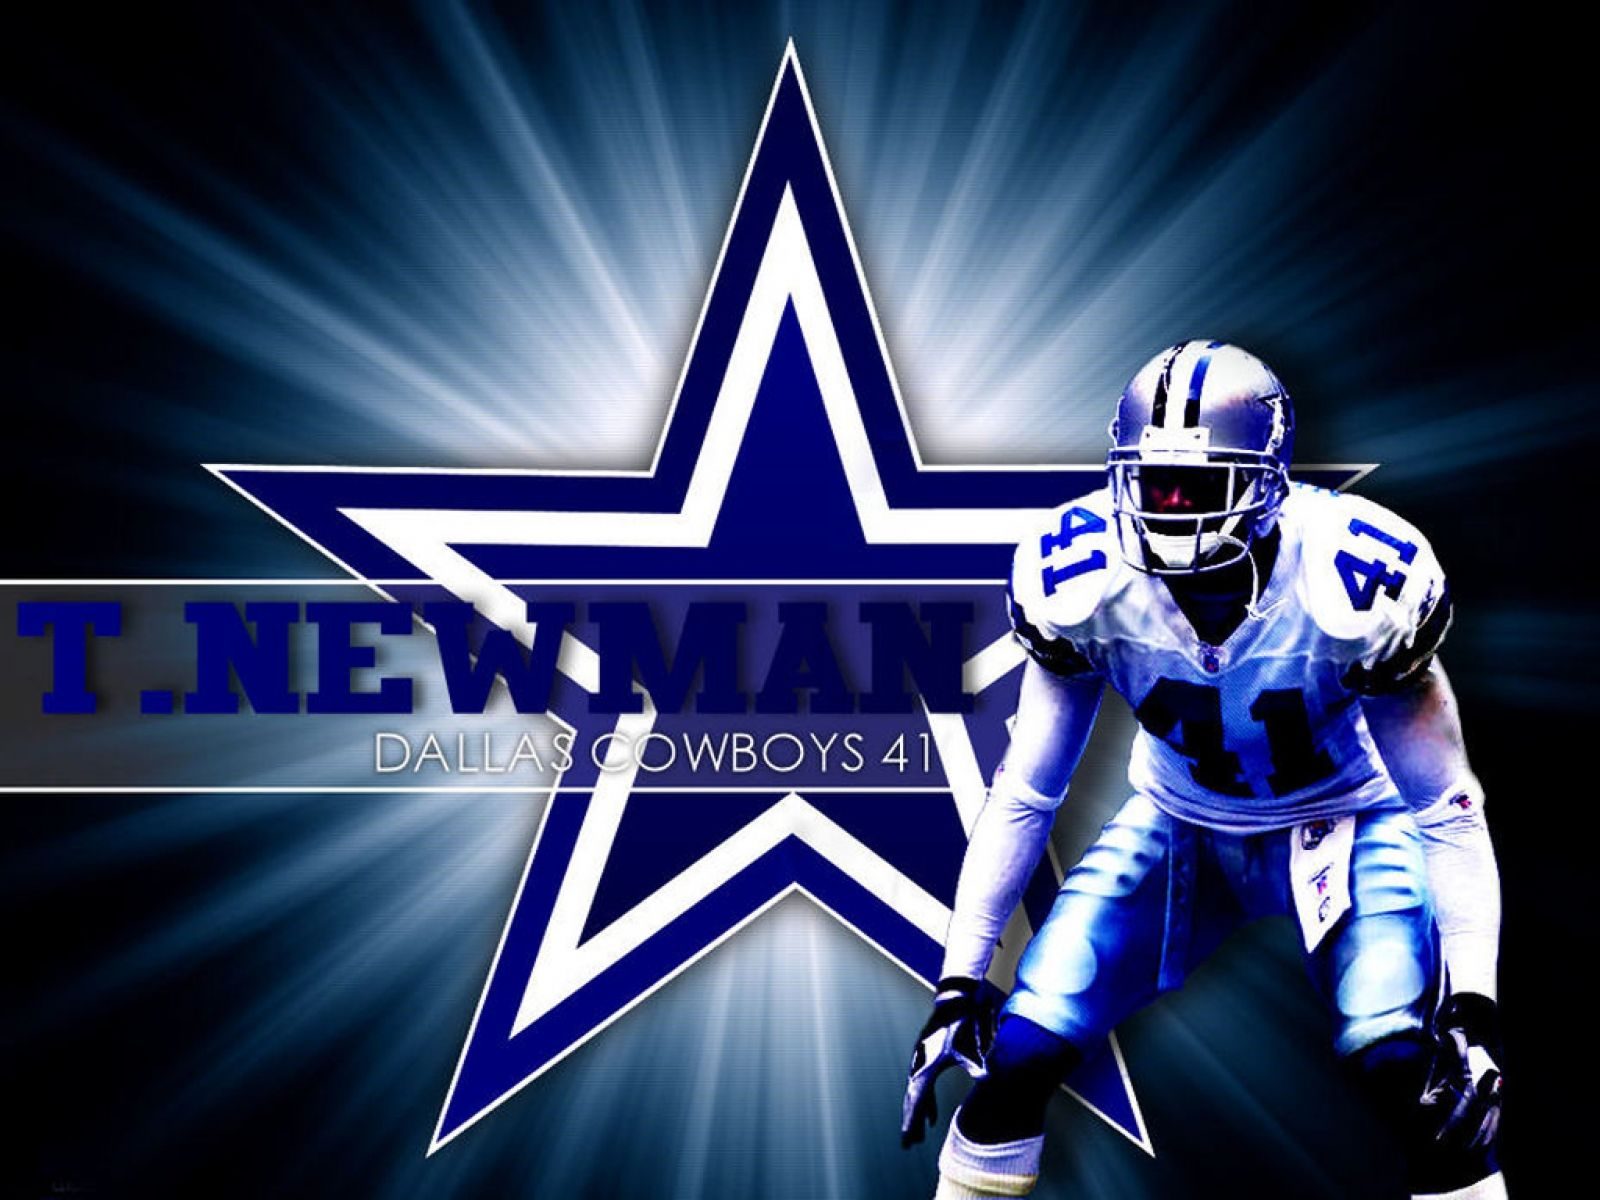 dallas cowboys wallpapers,